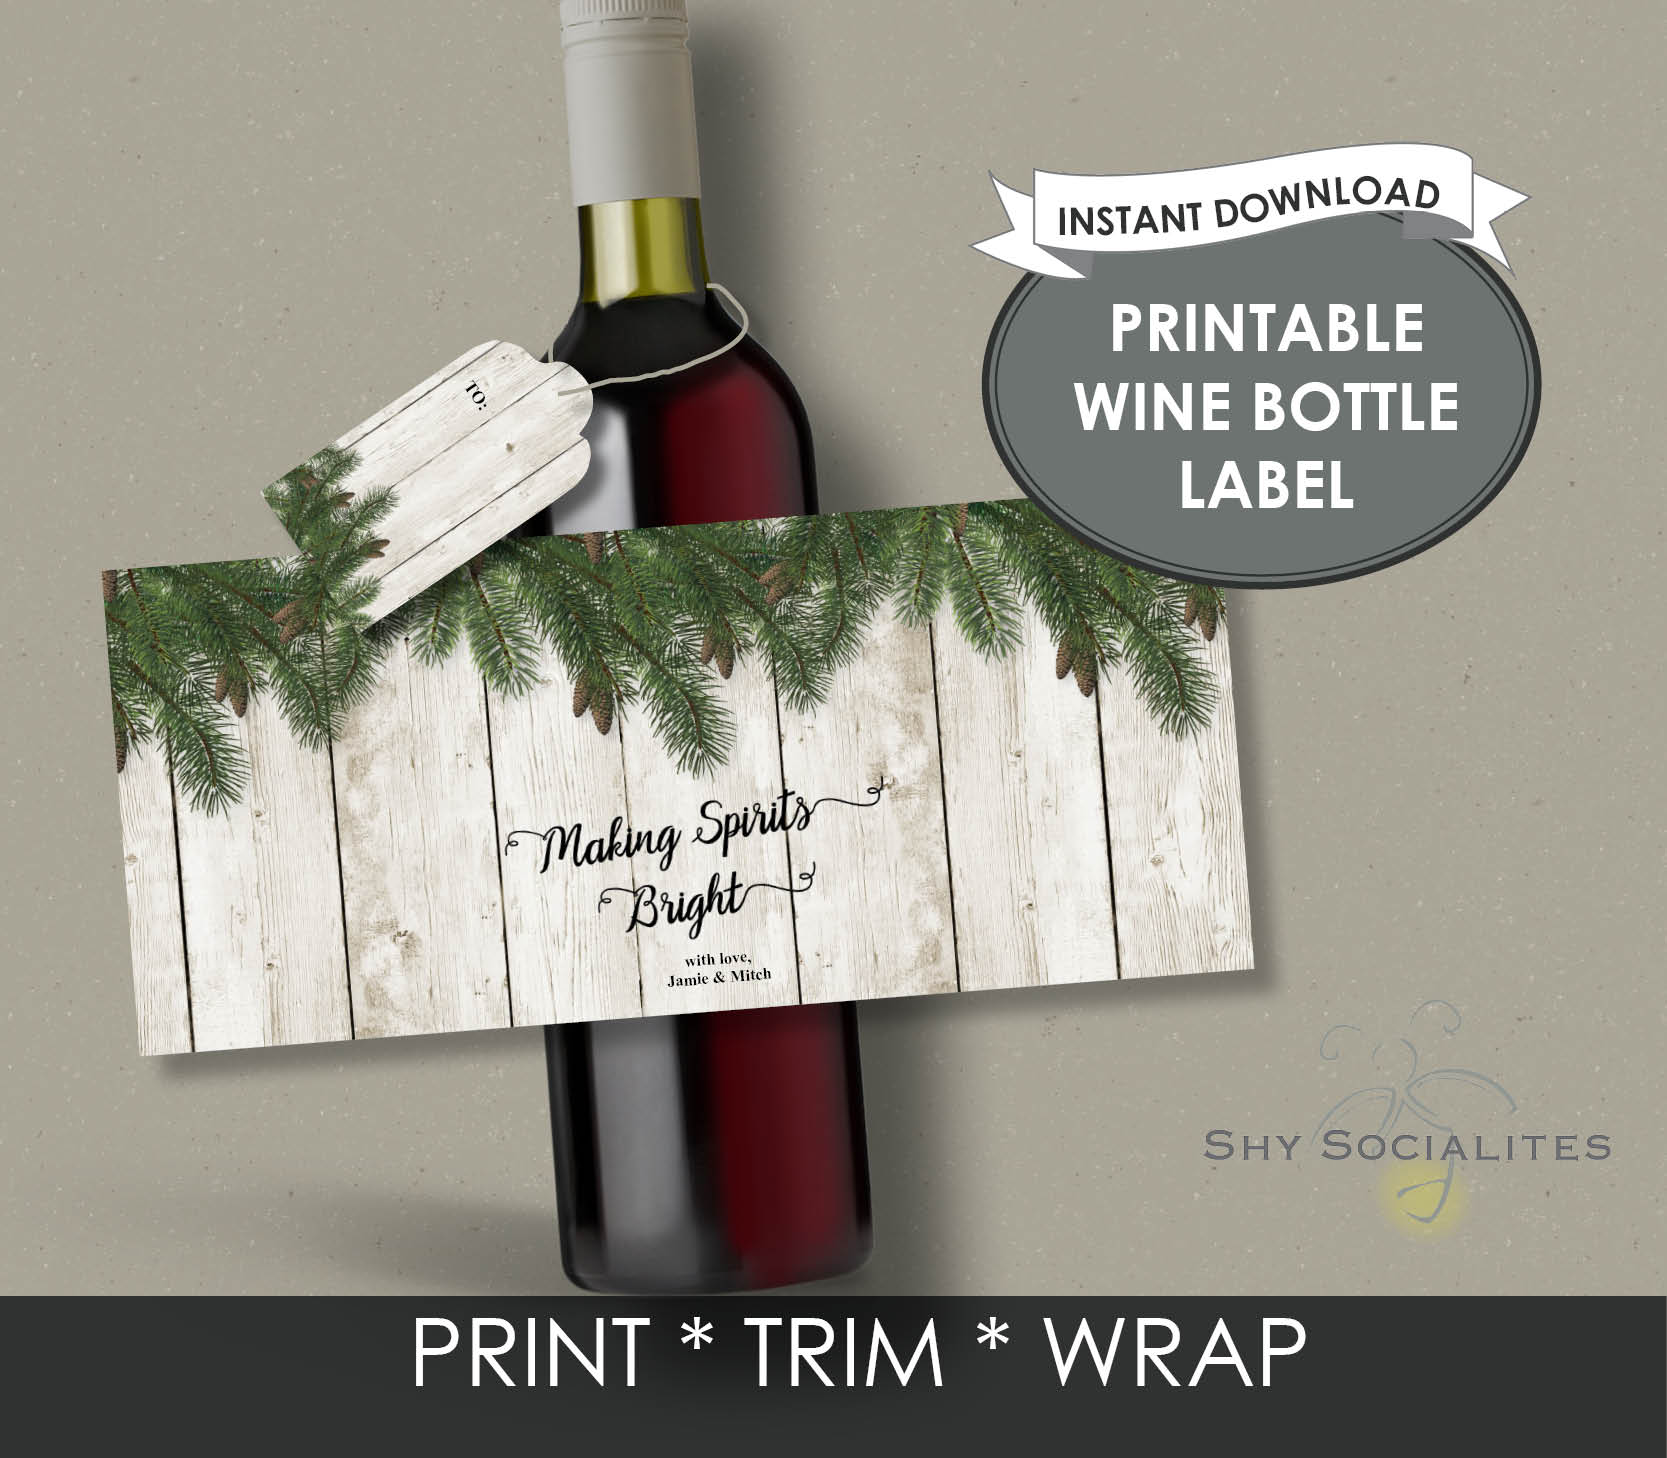 photo regarding Printable Wine Bottle Label named Vacation Printable Wine Bottle Label Shy Socialites